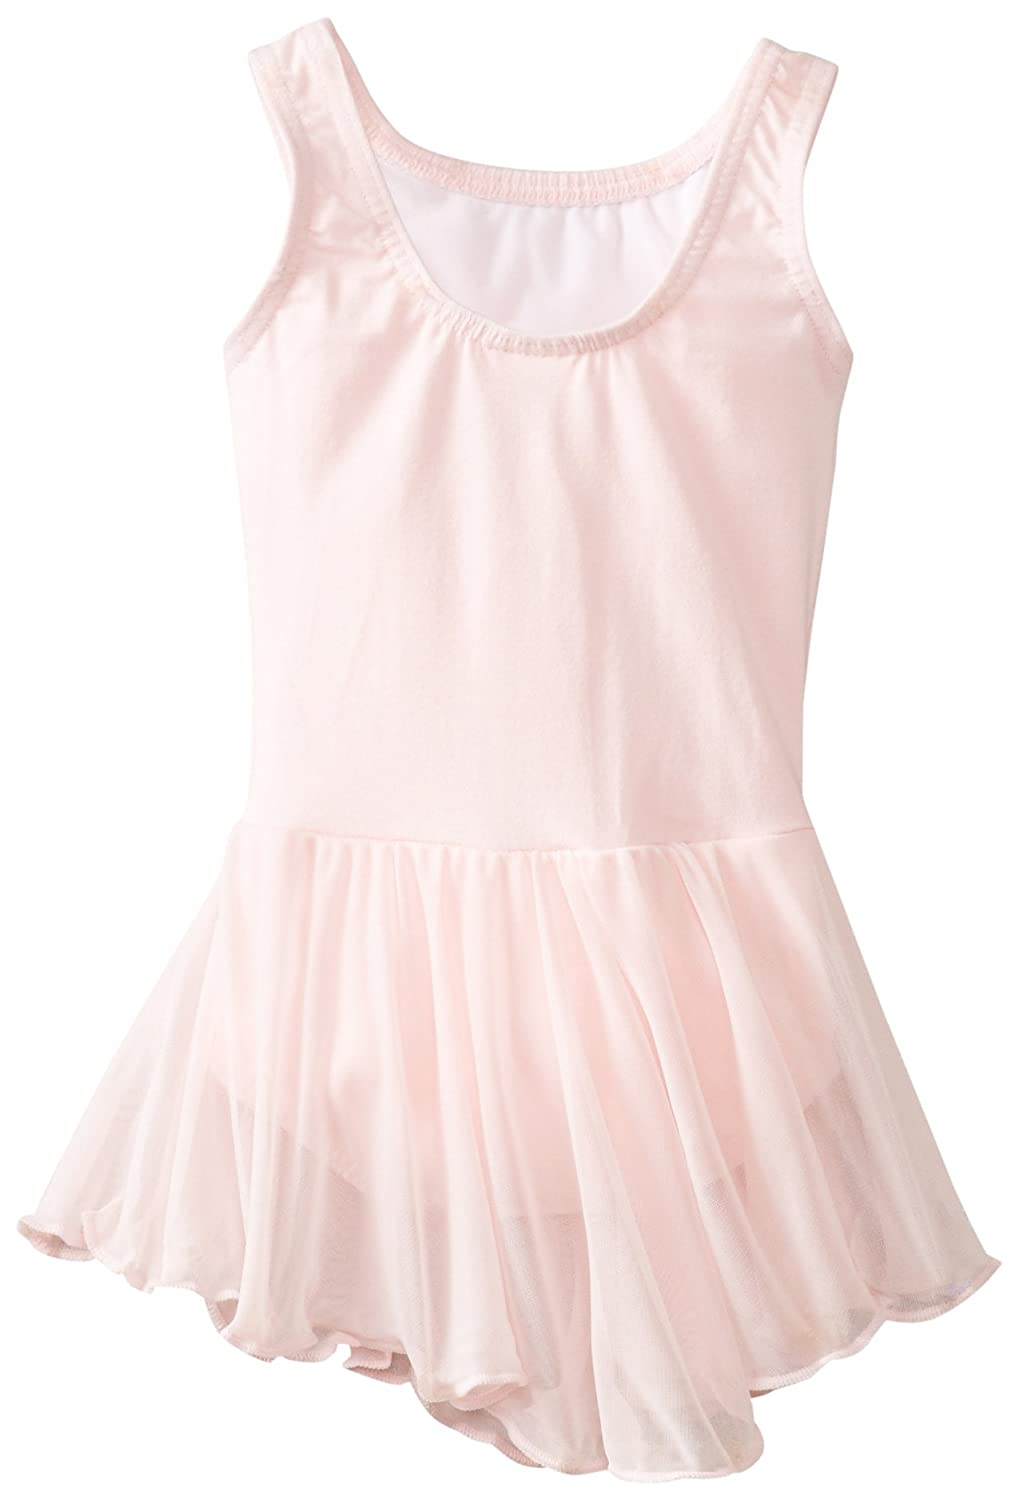 Little Girl Leotard Dress Sleeveless Tank One Piece Ballerina Top Dancewear Costume Clementine Girls 2-6X MG190